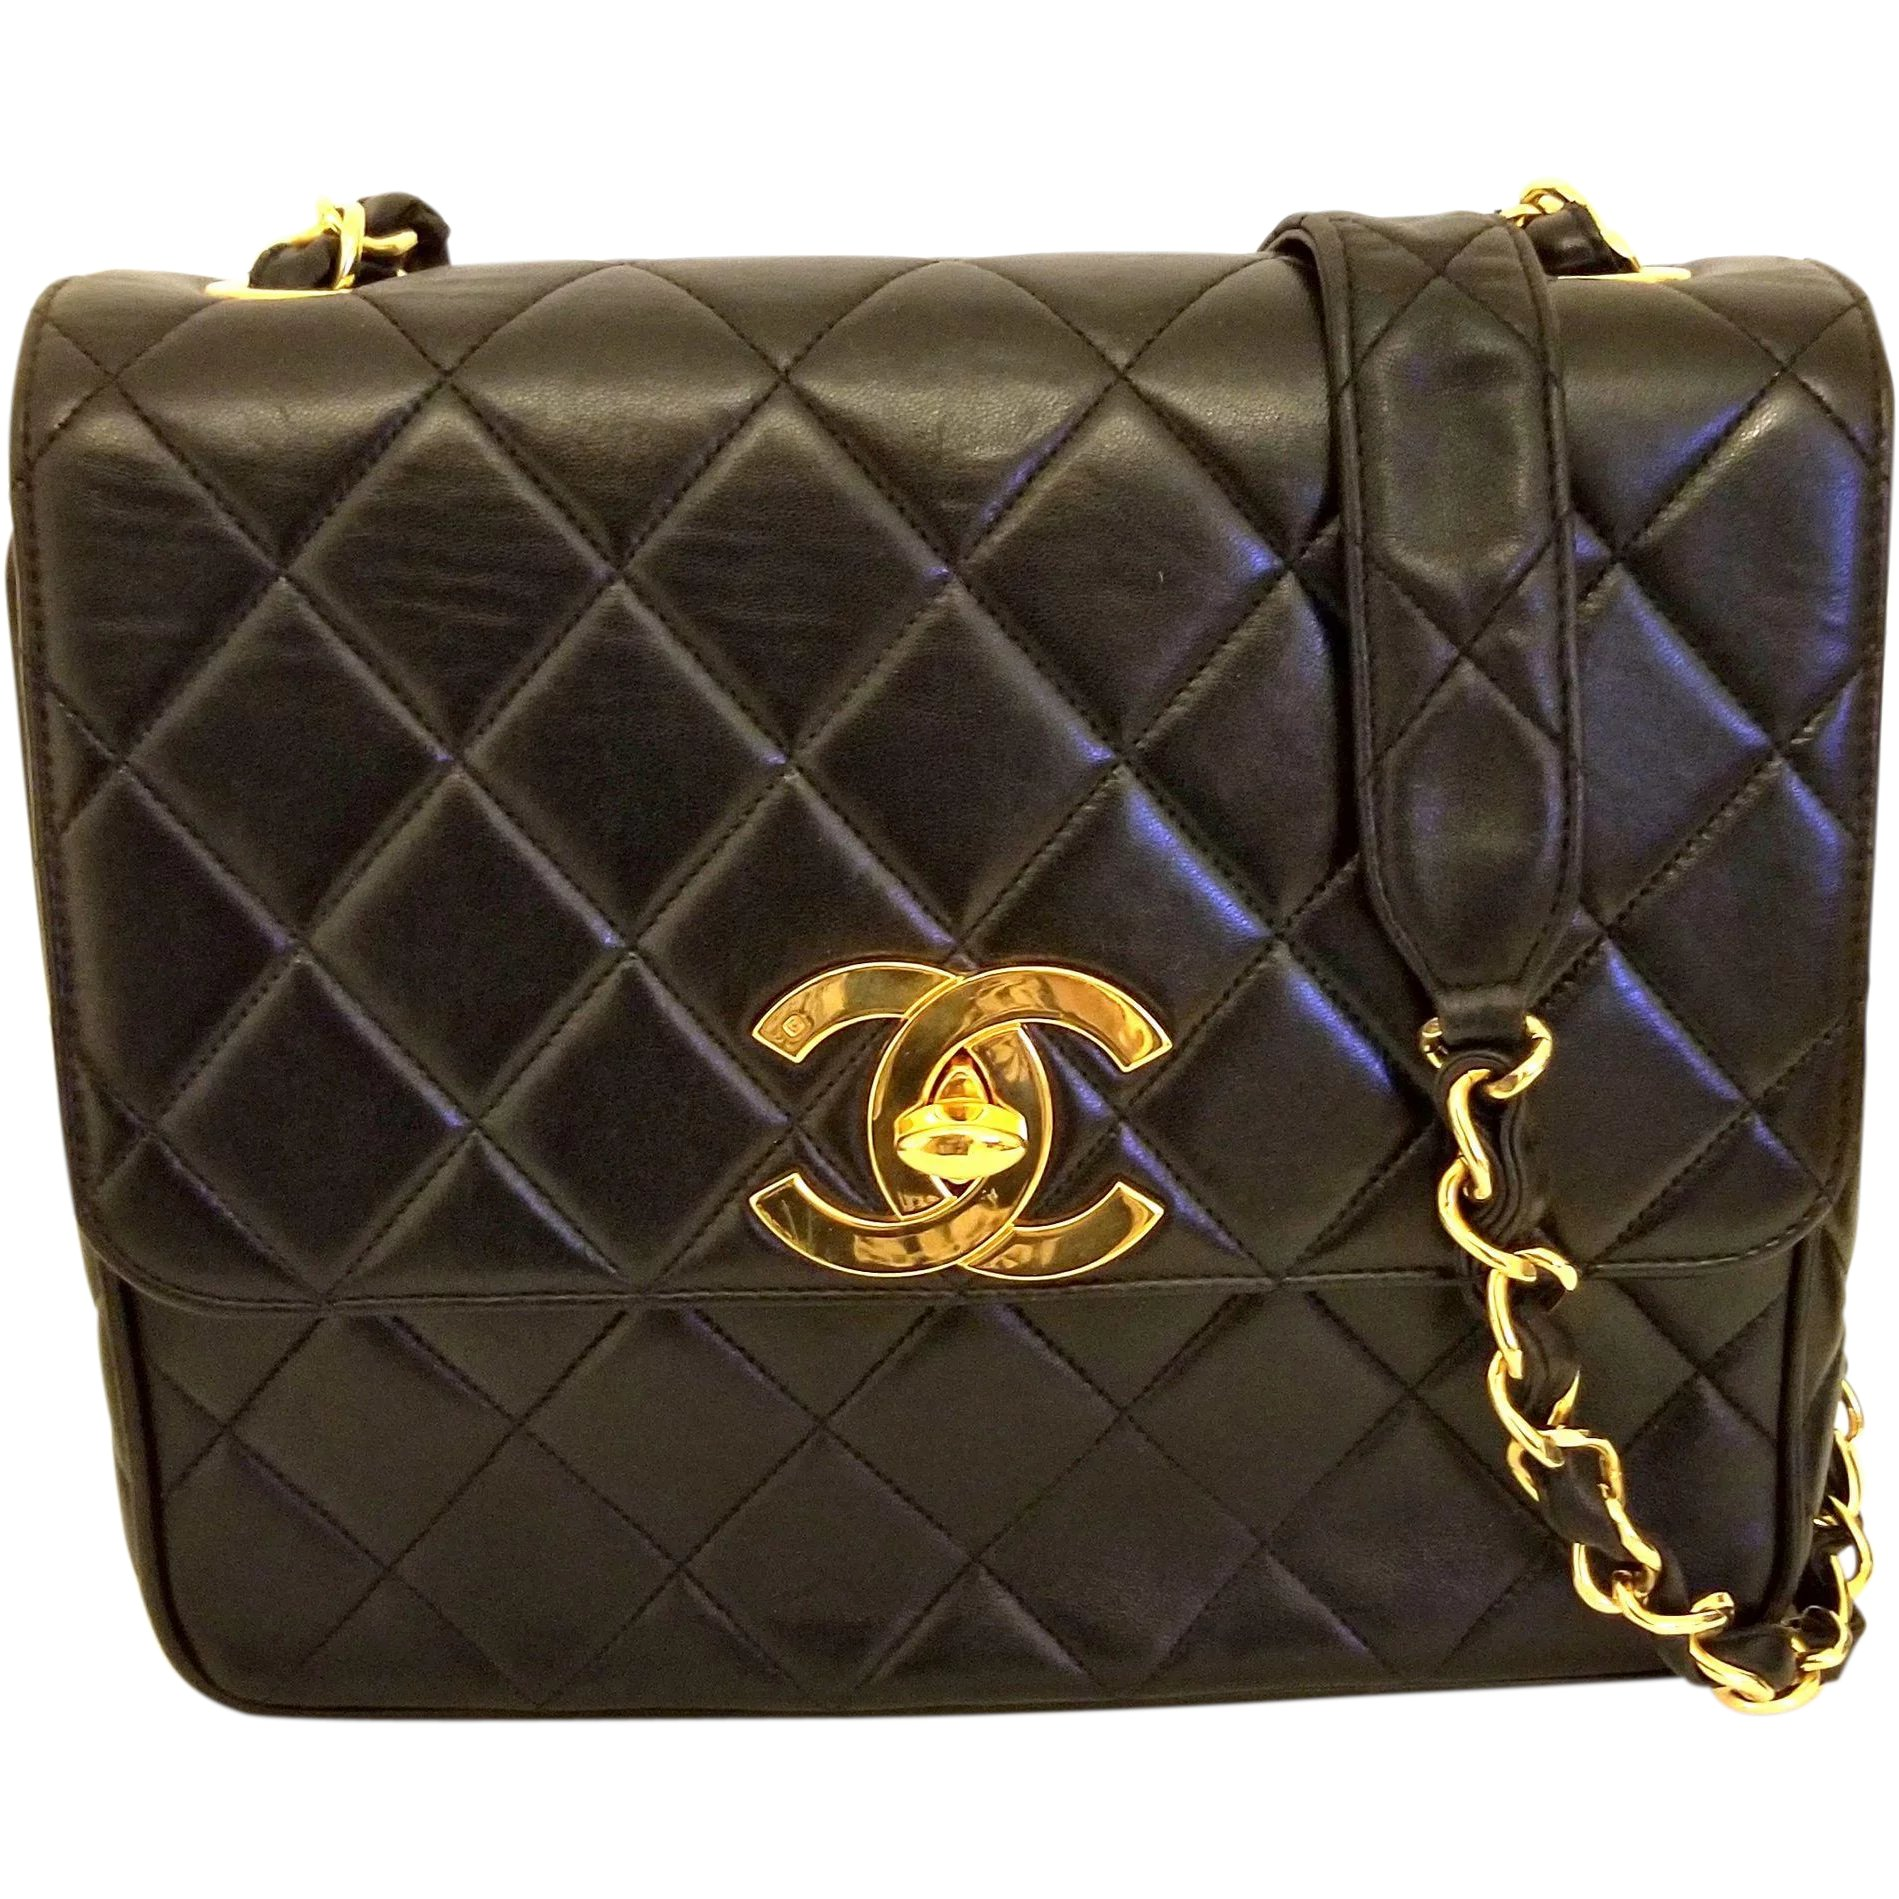 5dc3d7b41b Vintage Chanel Black Lambskin Large CC Shoulder Bag   Vintage Paris Designs